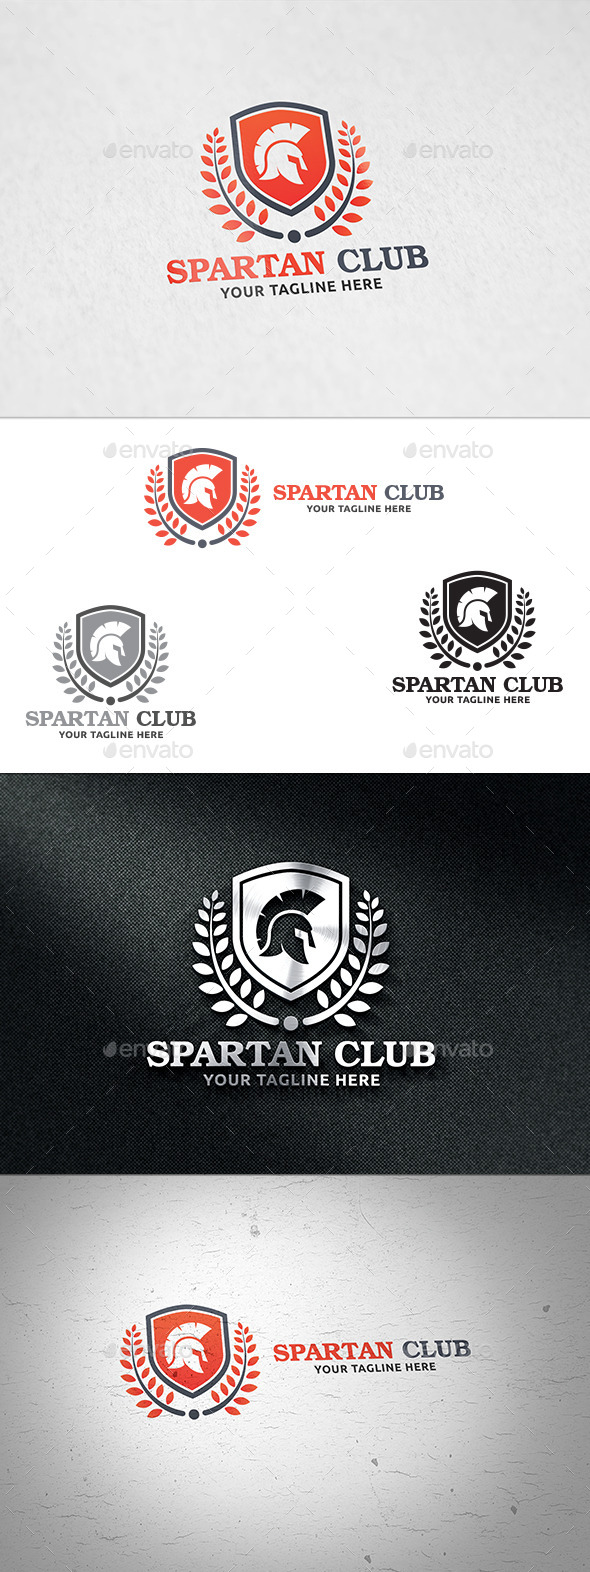 Spartan Club - Logo Template - Crests Logo Templates